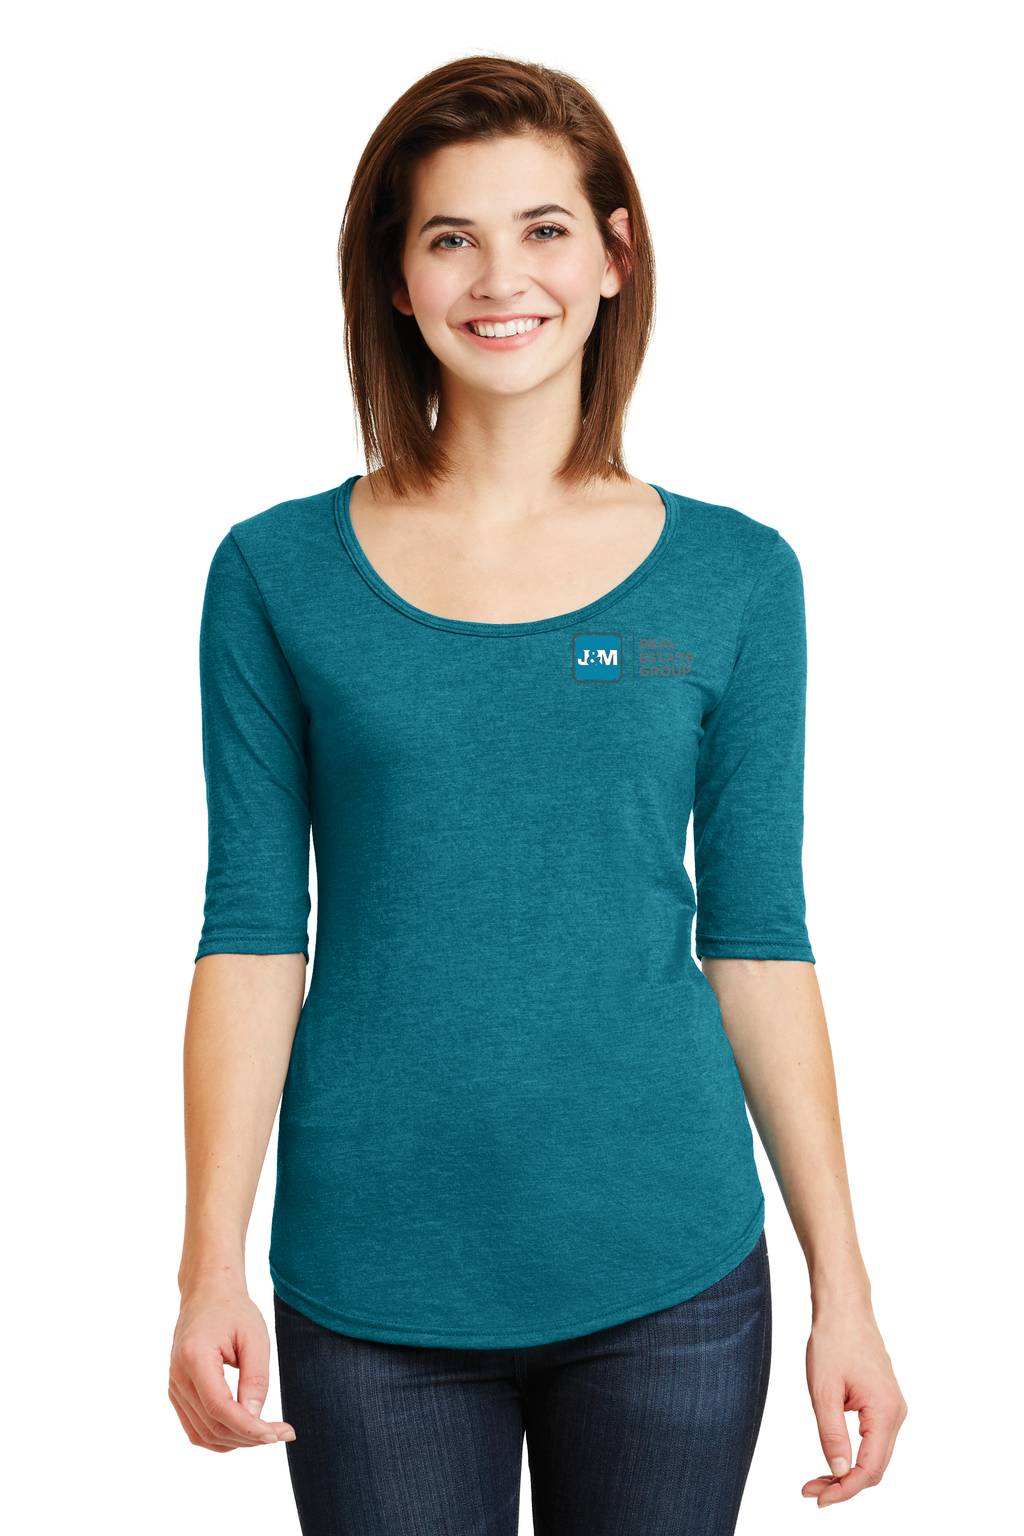 J&M Ladies Deep Scoop Neck